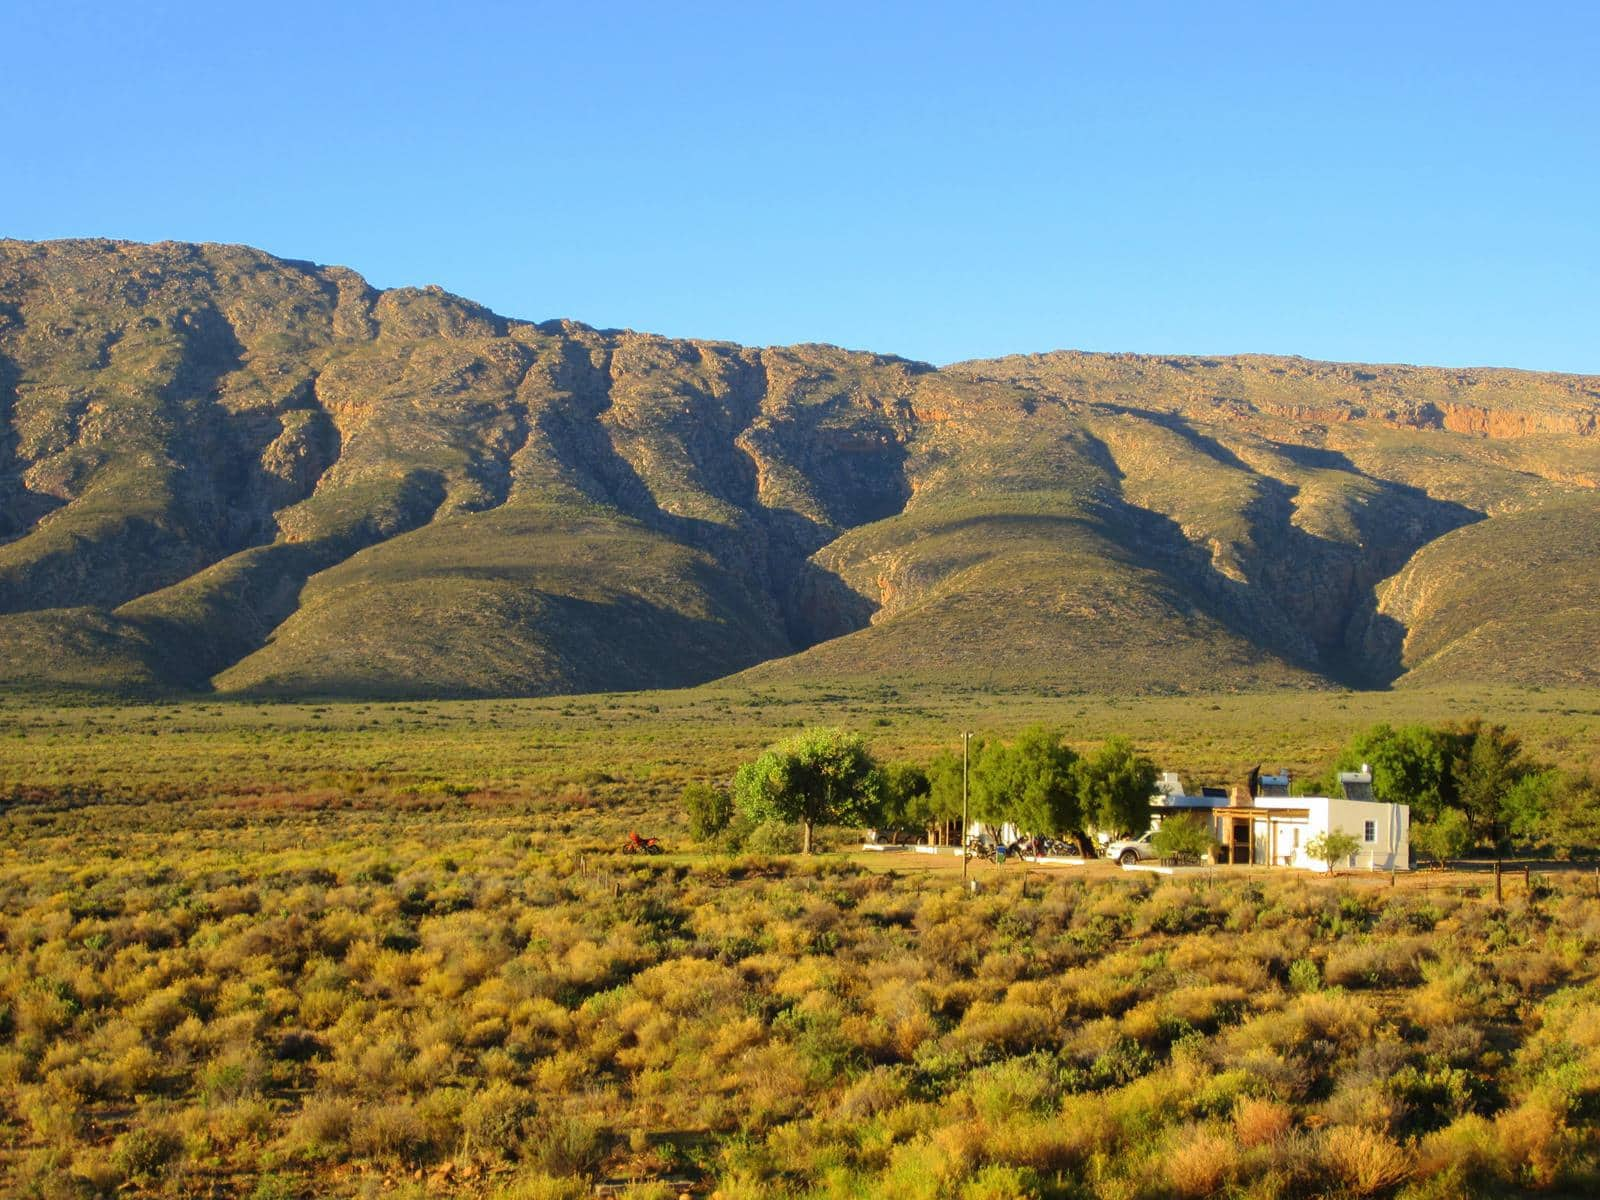 The self-catering cottages are very comfortable and have a lovely setting.